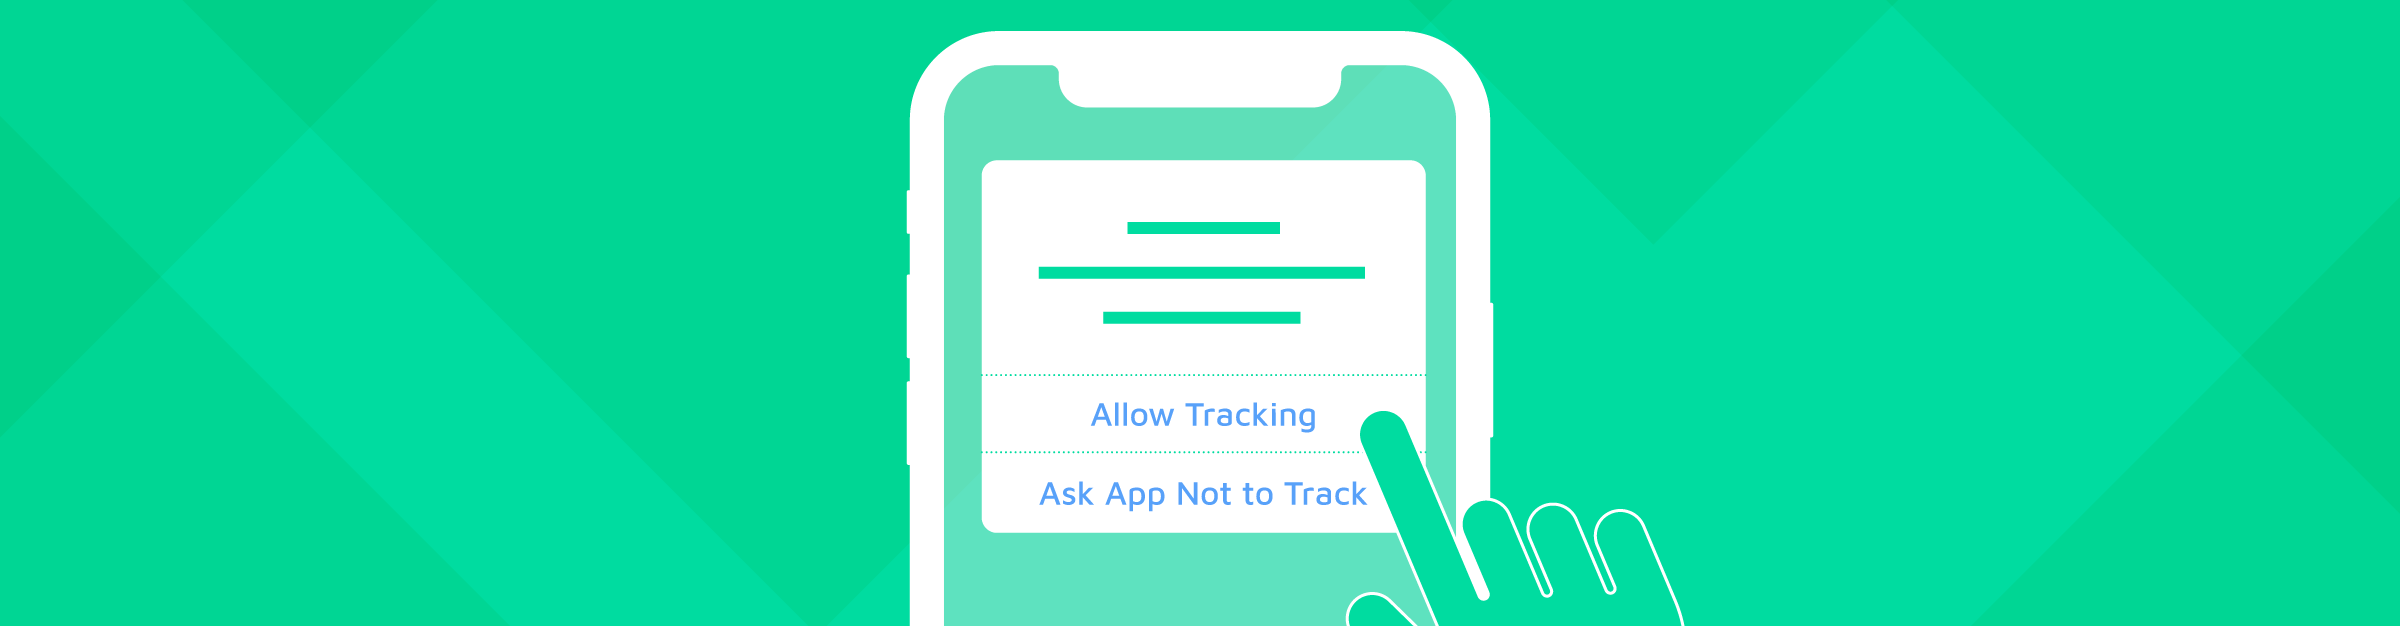 New in Digital: App Tracking Transparency!